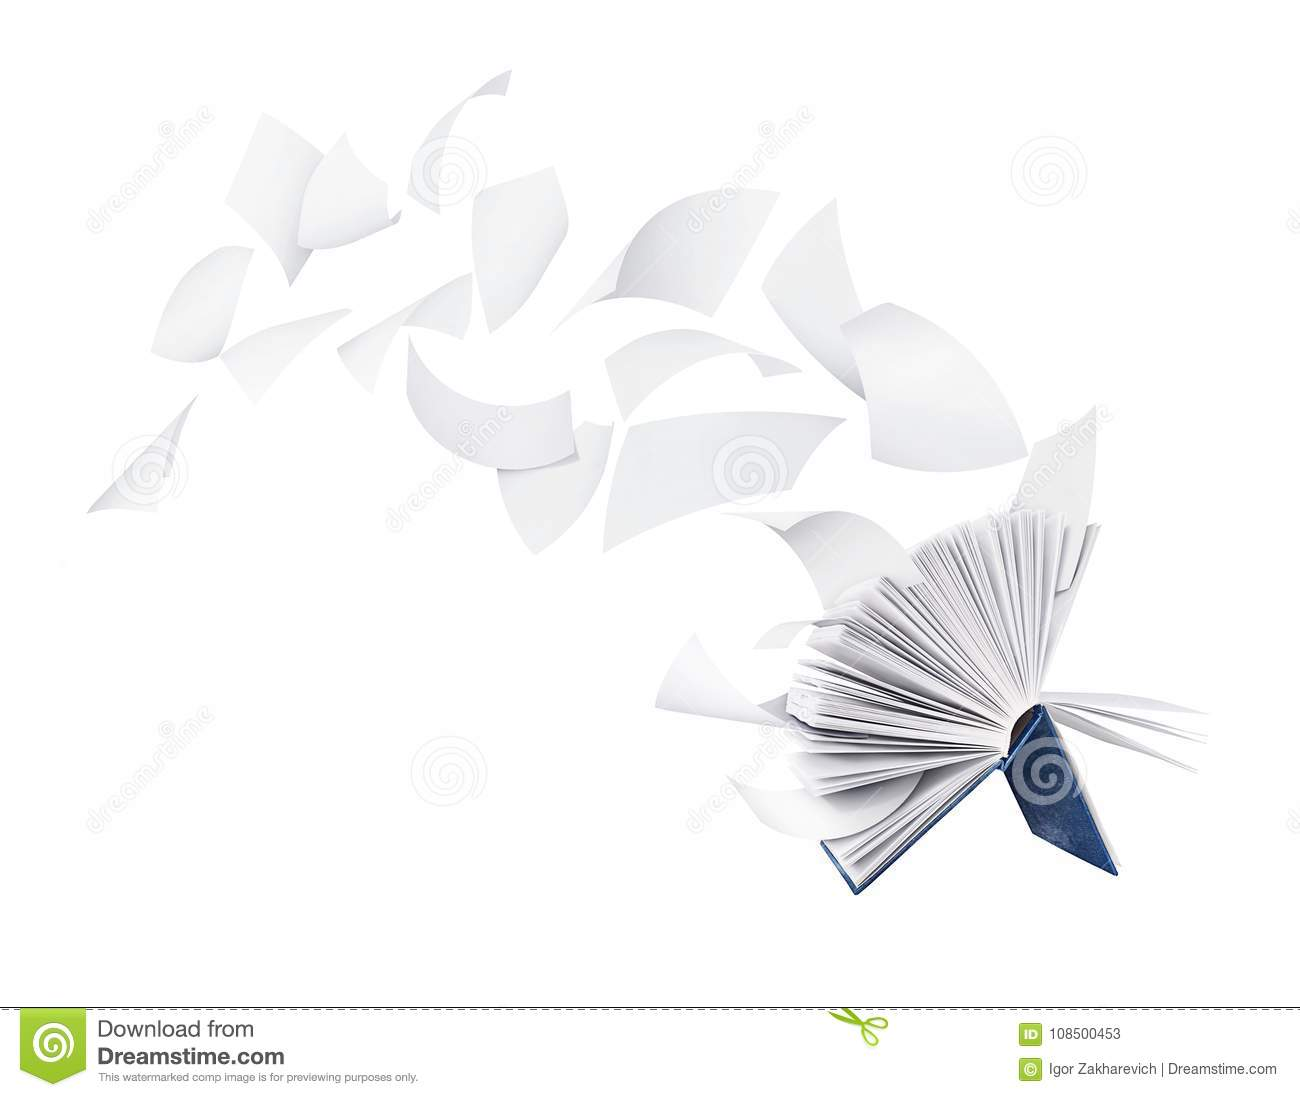 Two blank books with flying pages isolated on white